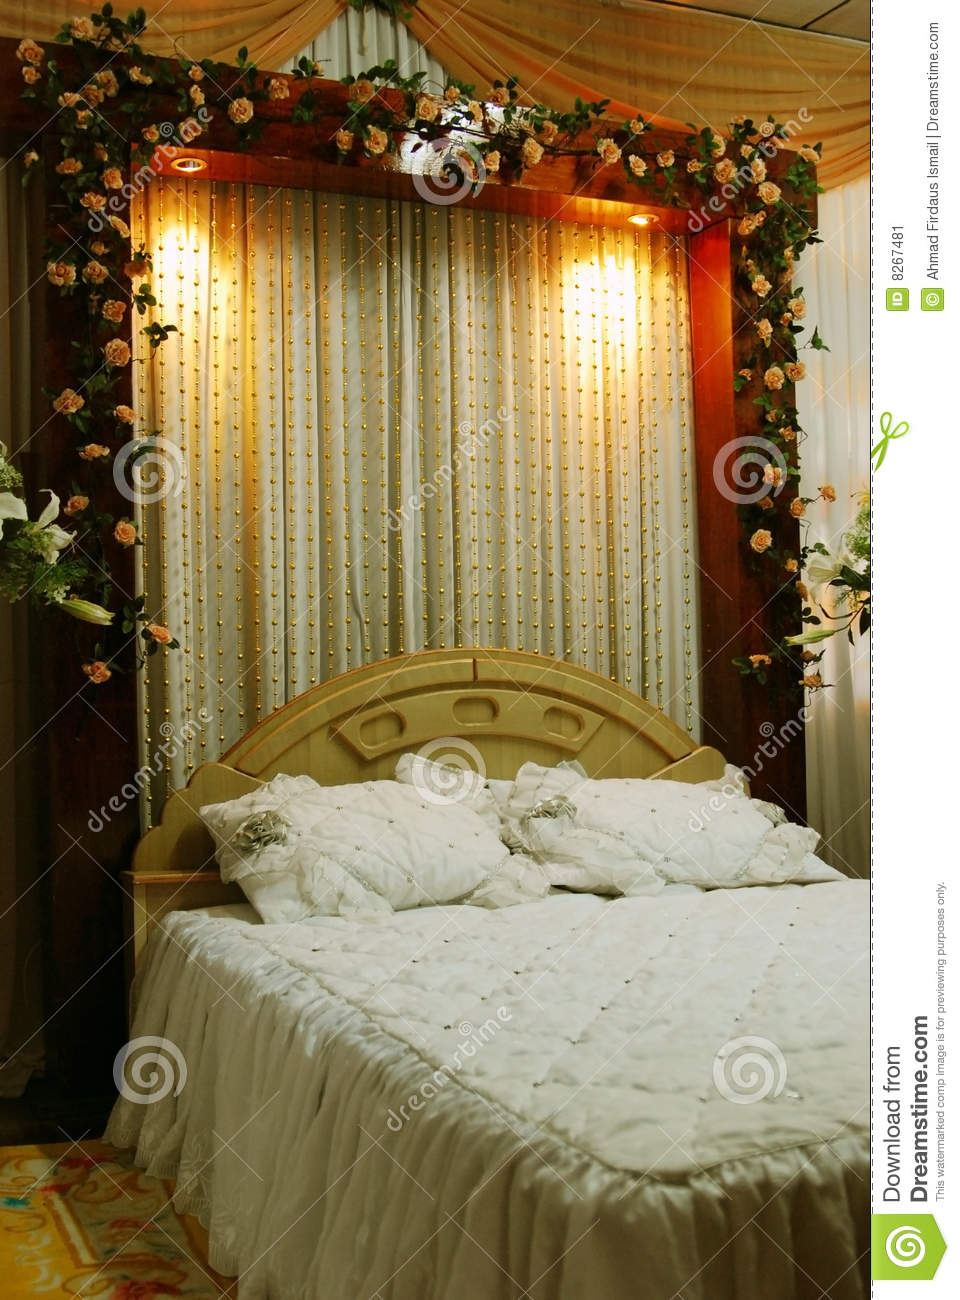 Wedding Bedroom Decorations Wedding Bedroom Decoration Romantic Decoration